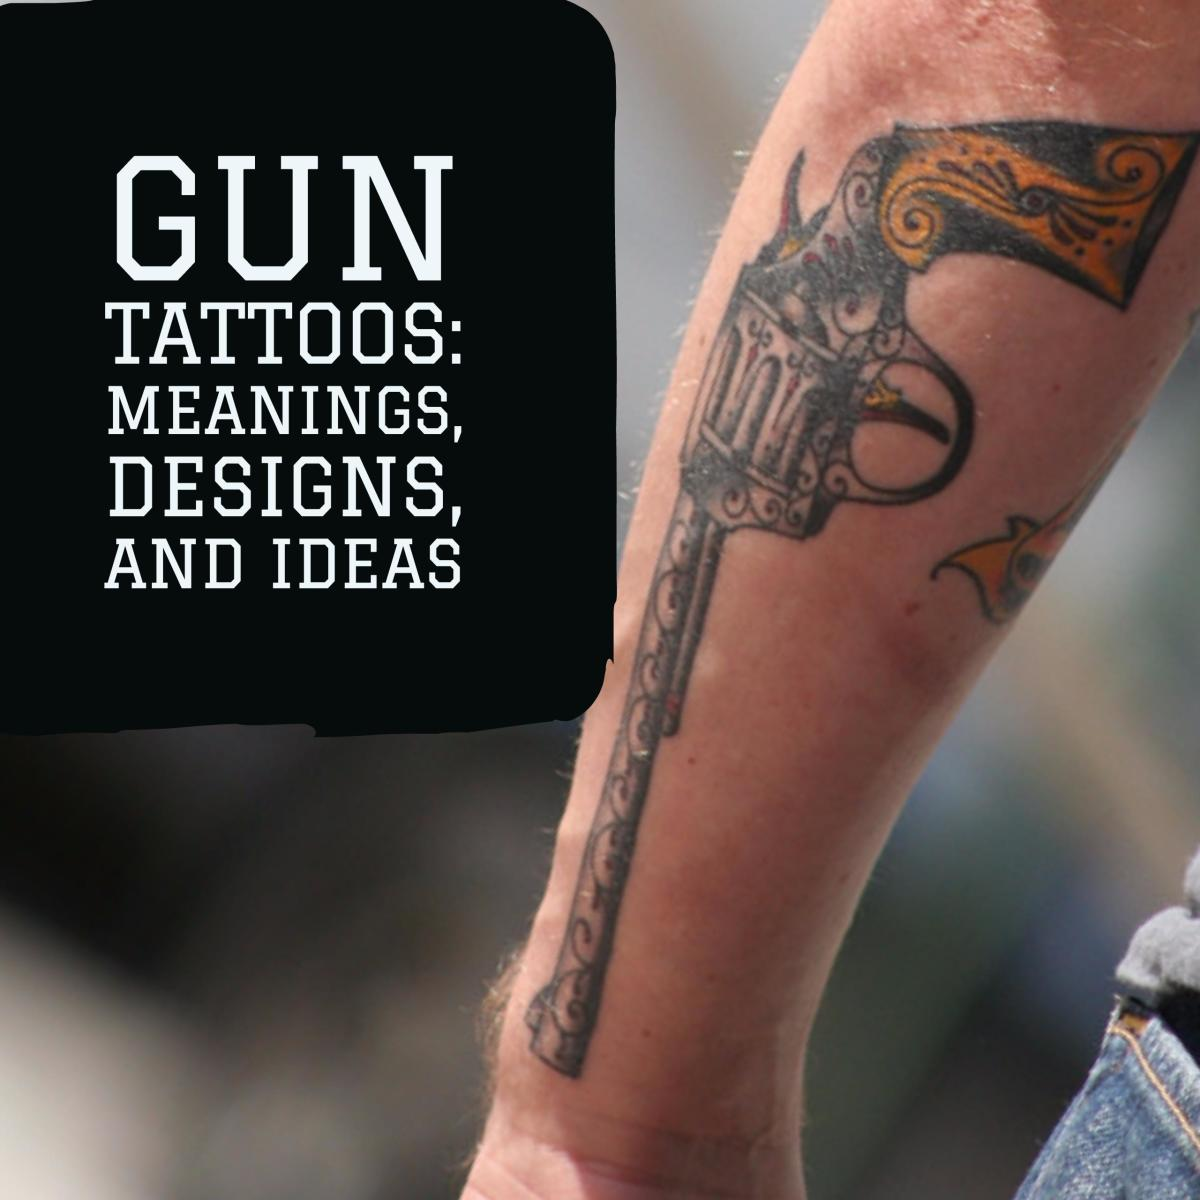 Planet Tattoo Designs Ideas And Meaning: Gun Tattoos: Meanings, Designs, And Ideas